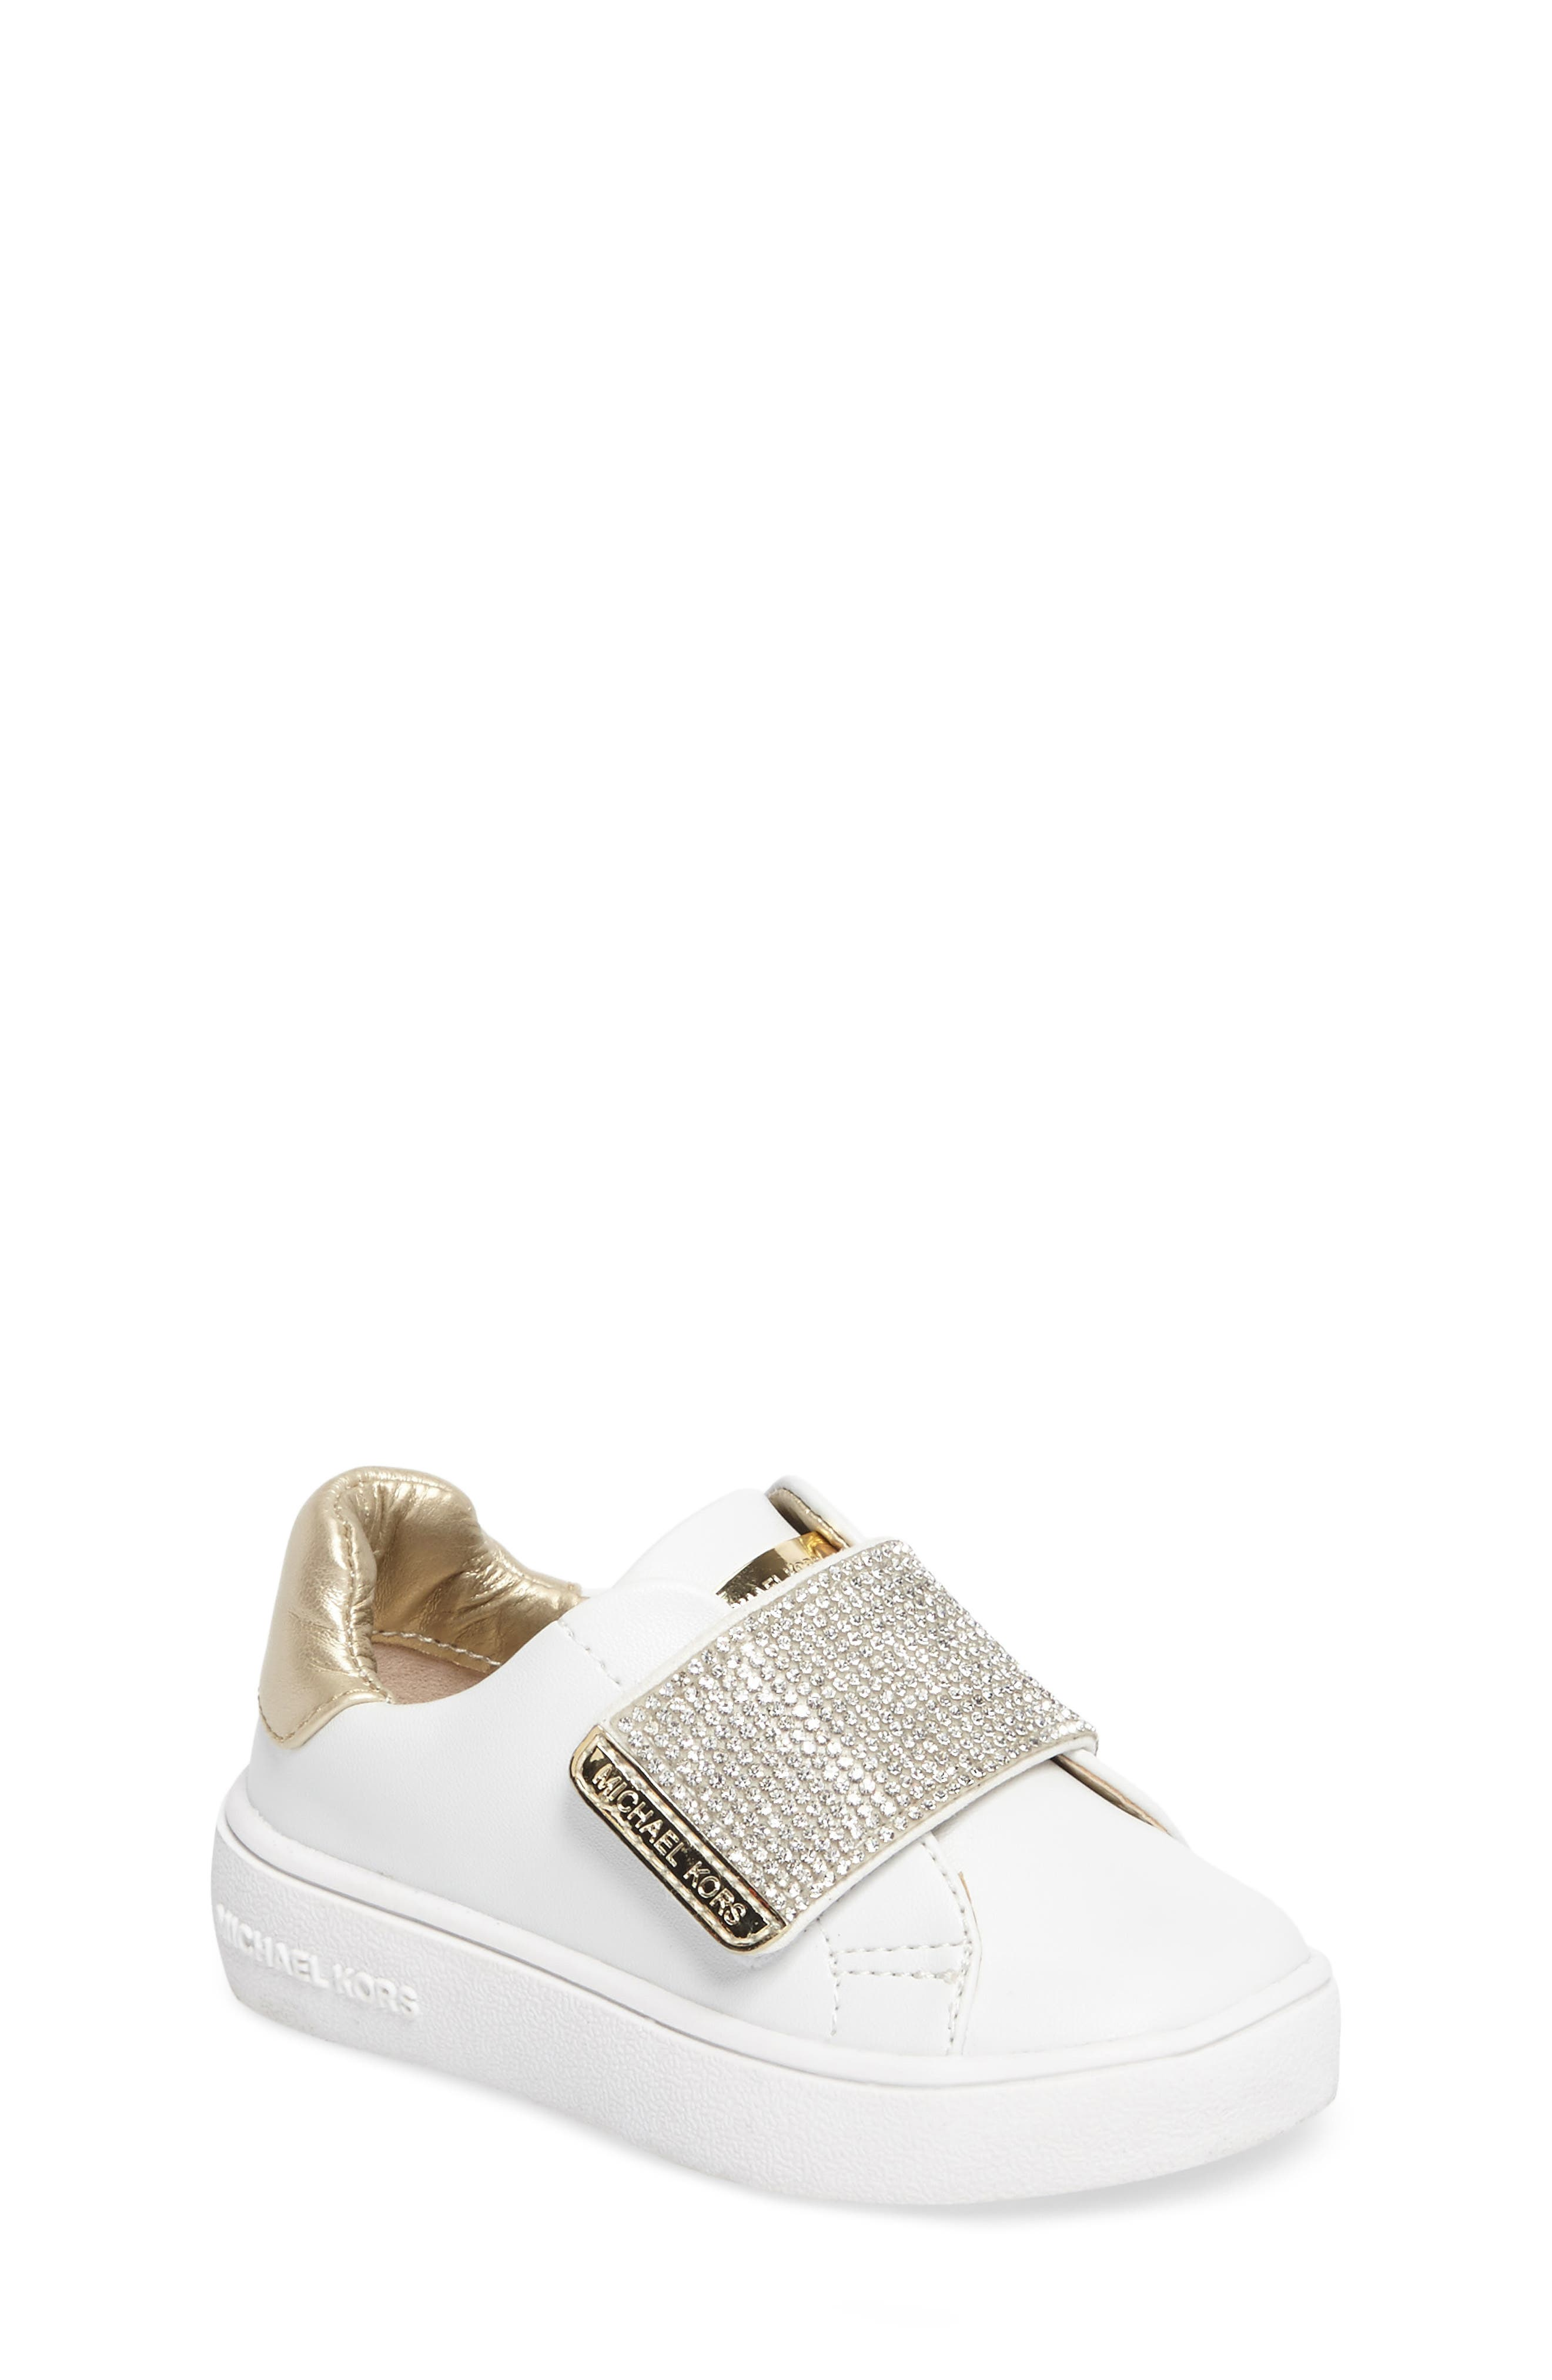 Ivy Candy Sneaker,                             Main thumbnail 1, color,                             WHITE GOLD